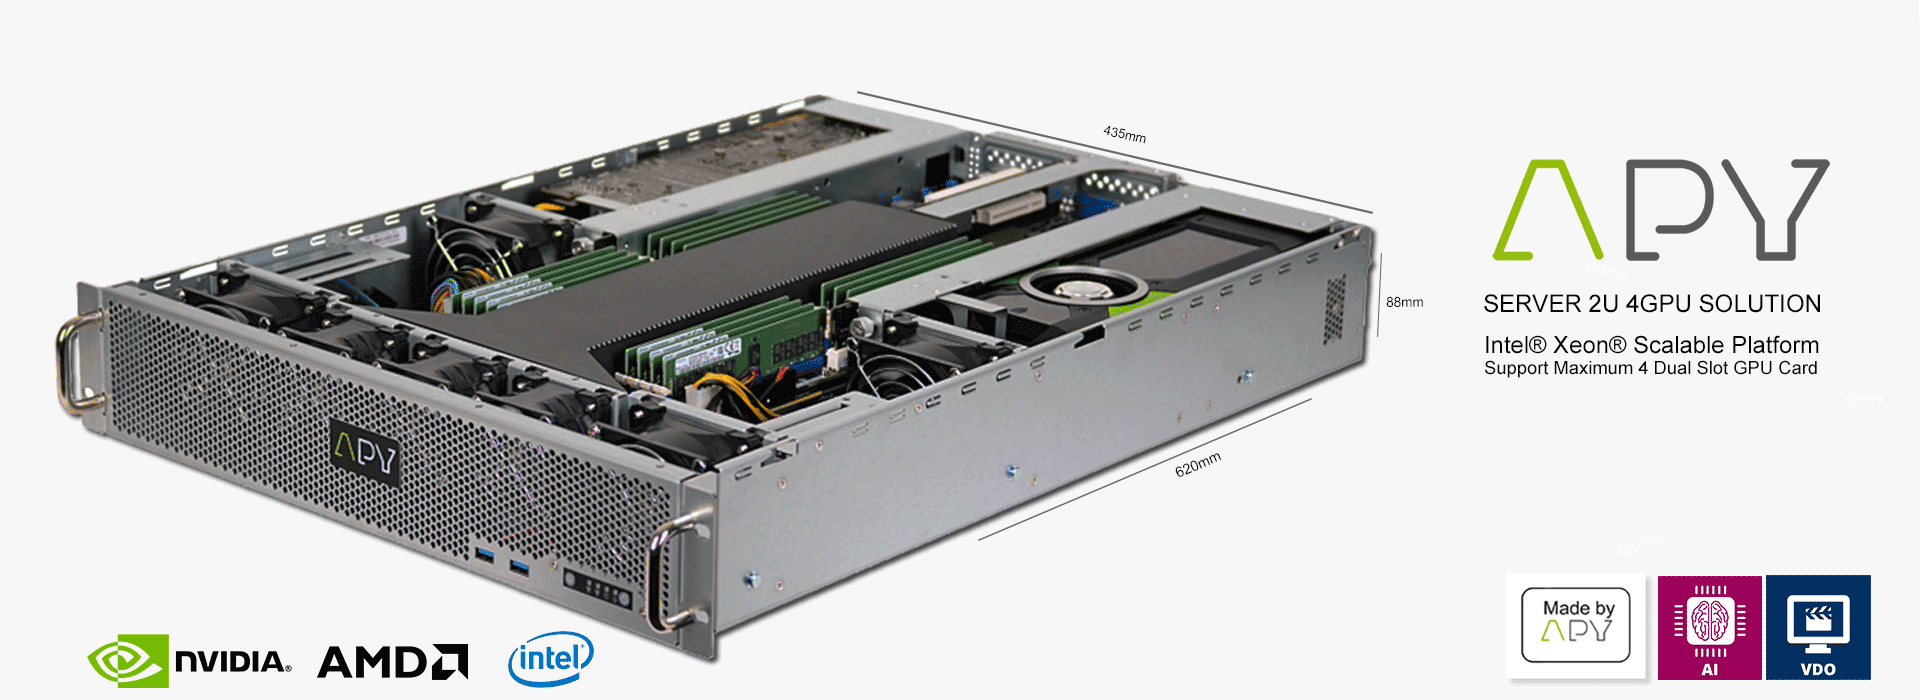 Discover the APY ONE G4 2U 4 GPU server made in APY